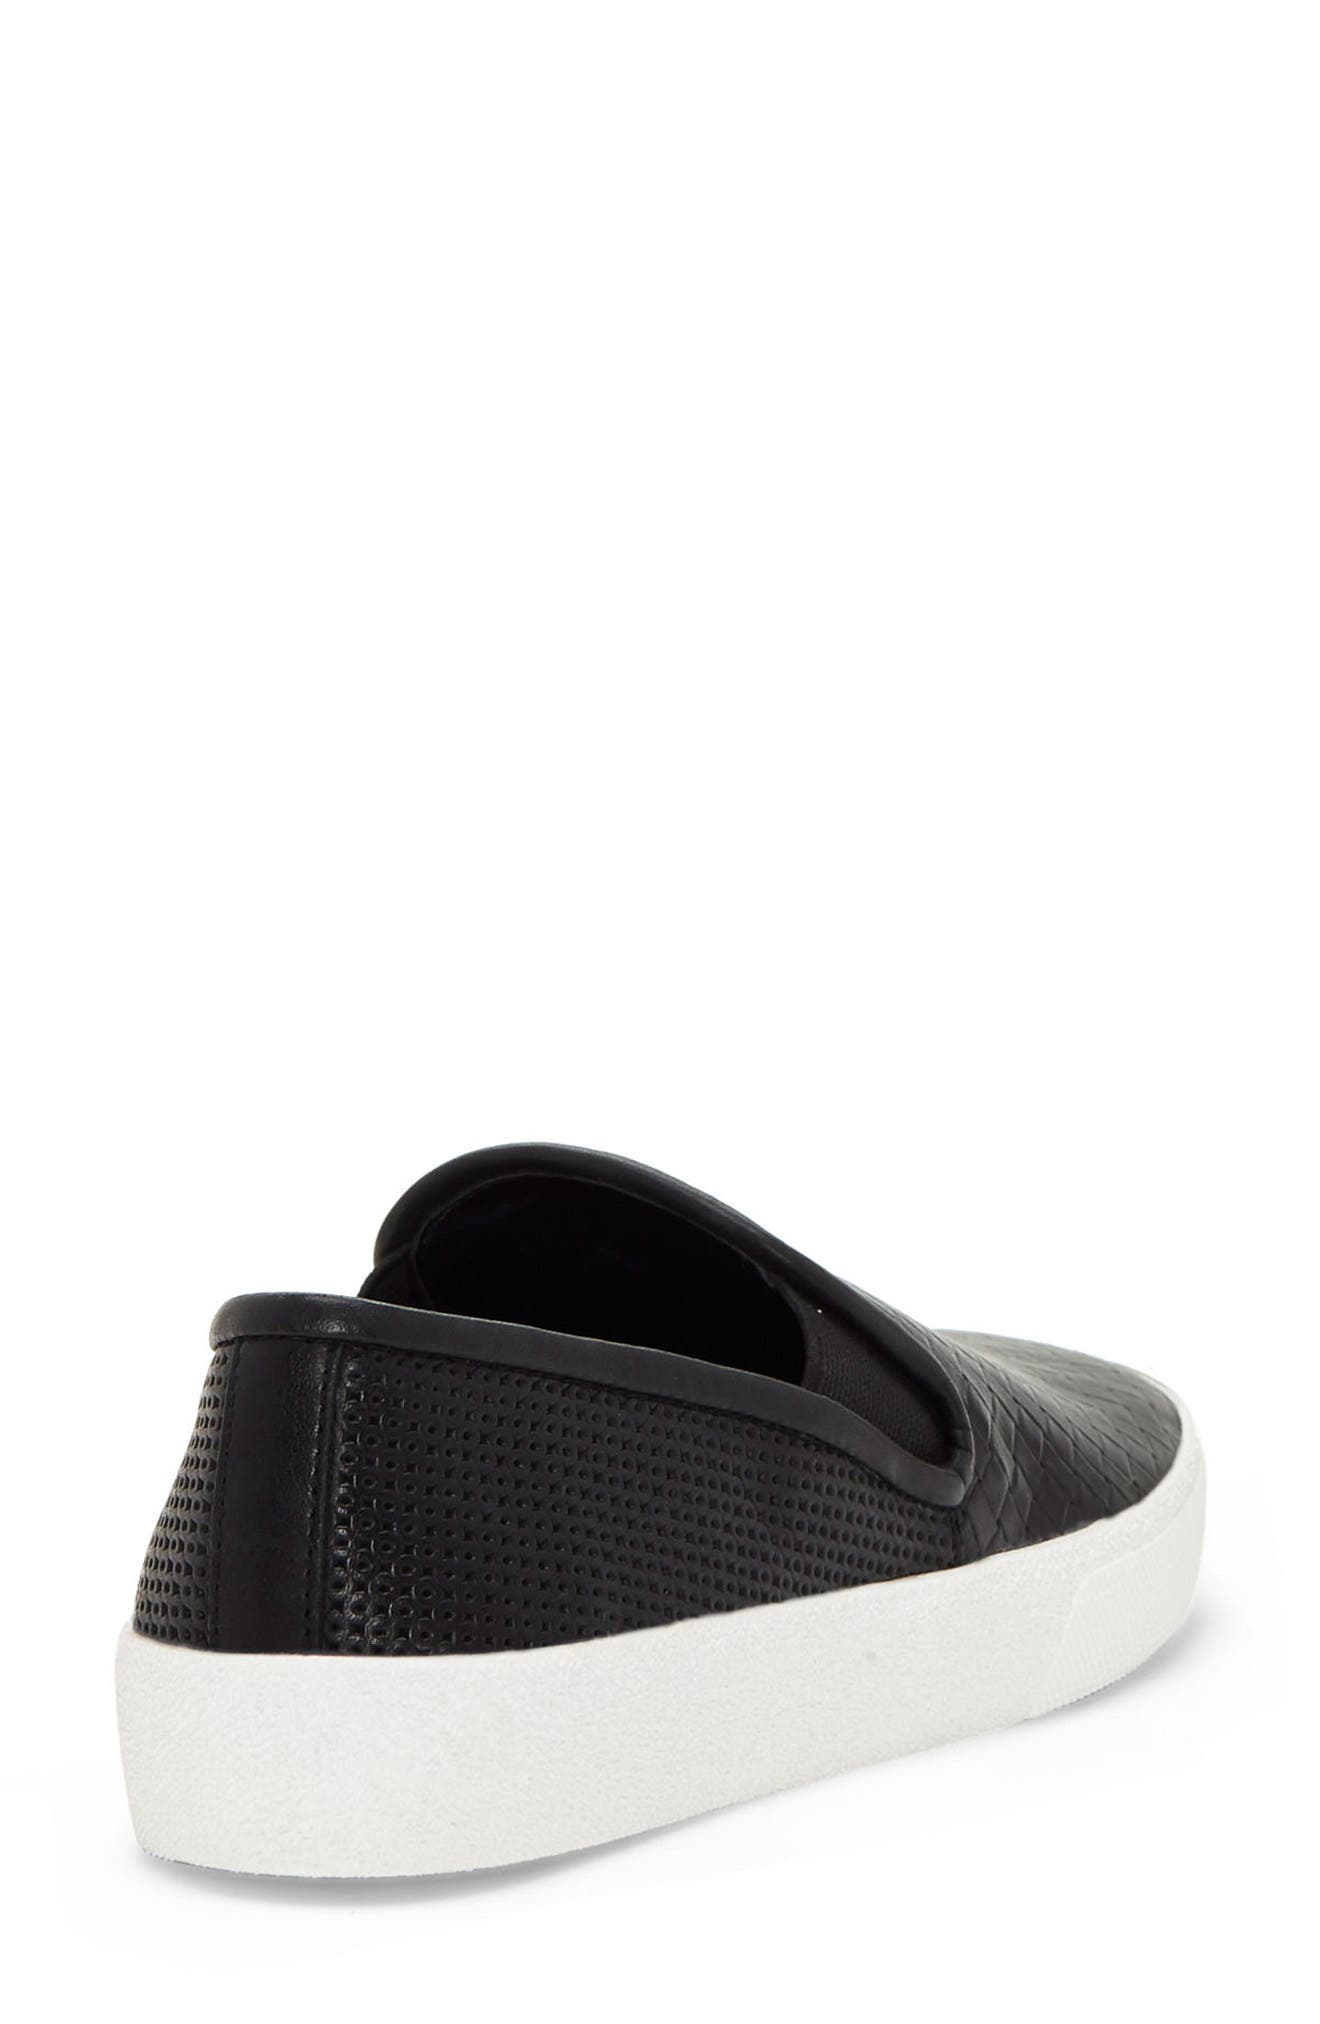 Alternate Image 2  - Vince Camuto Cariana Slip-On Sneaker (Women)